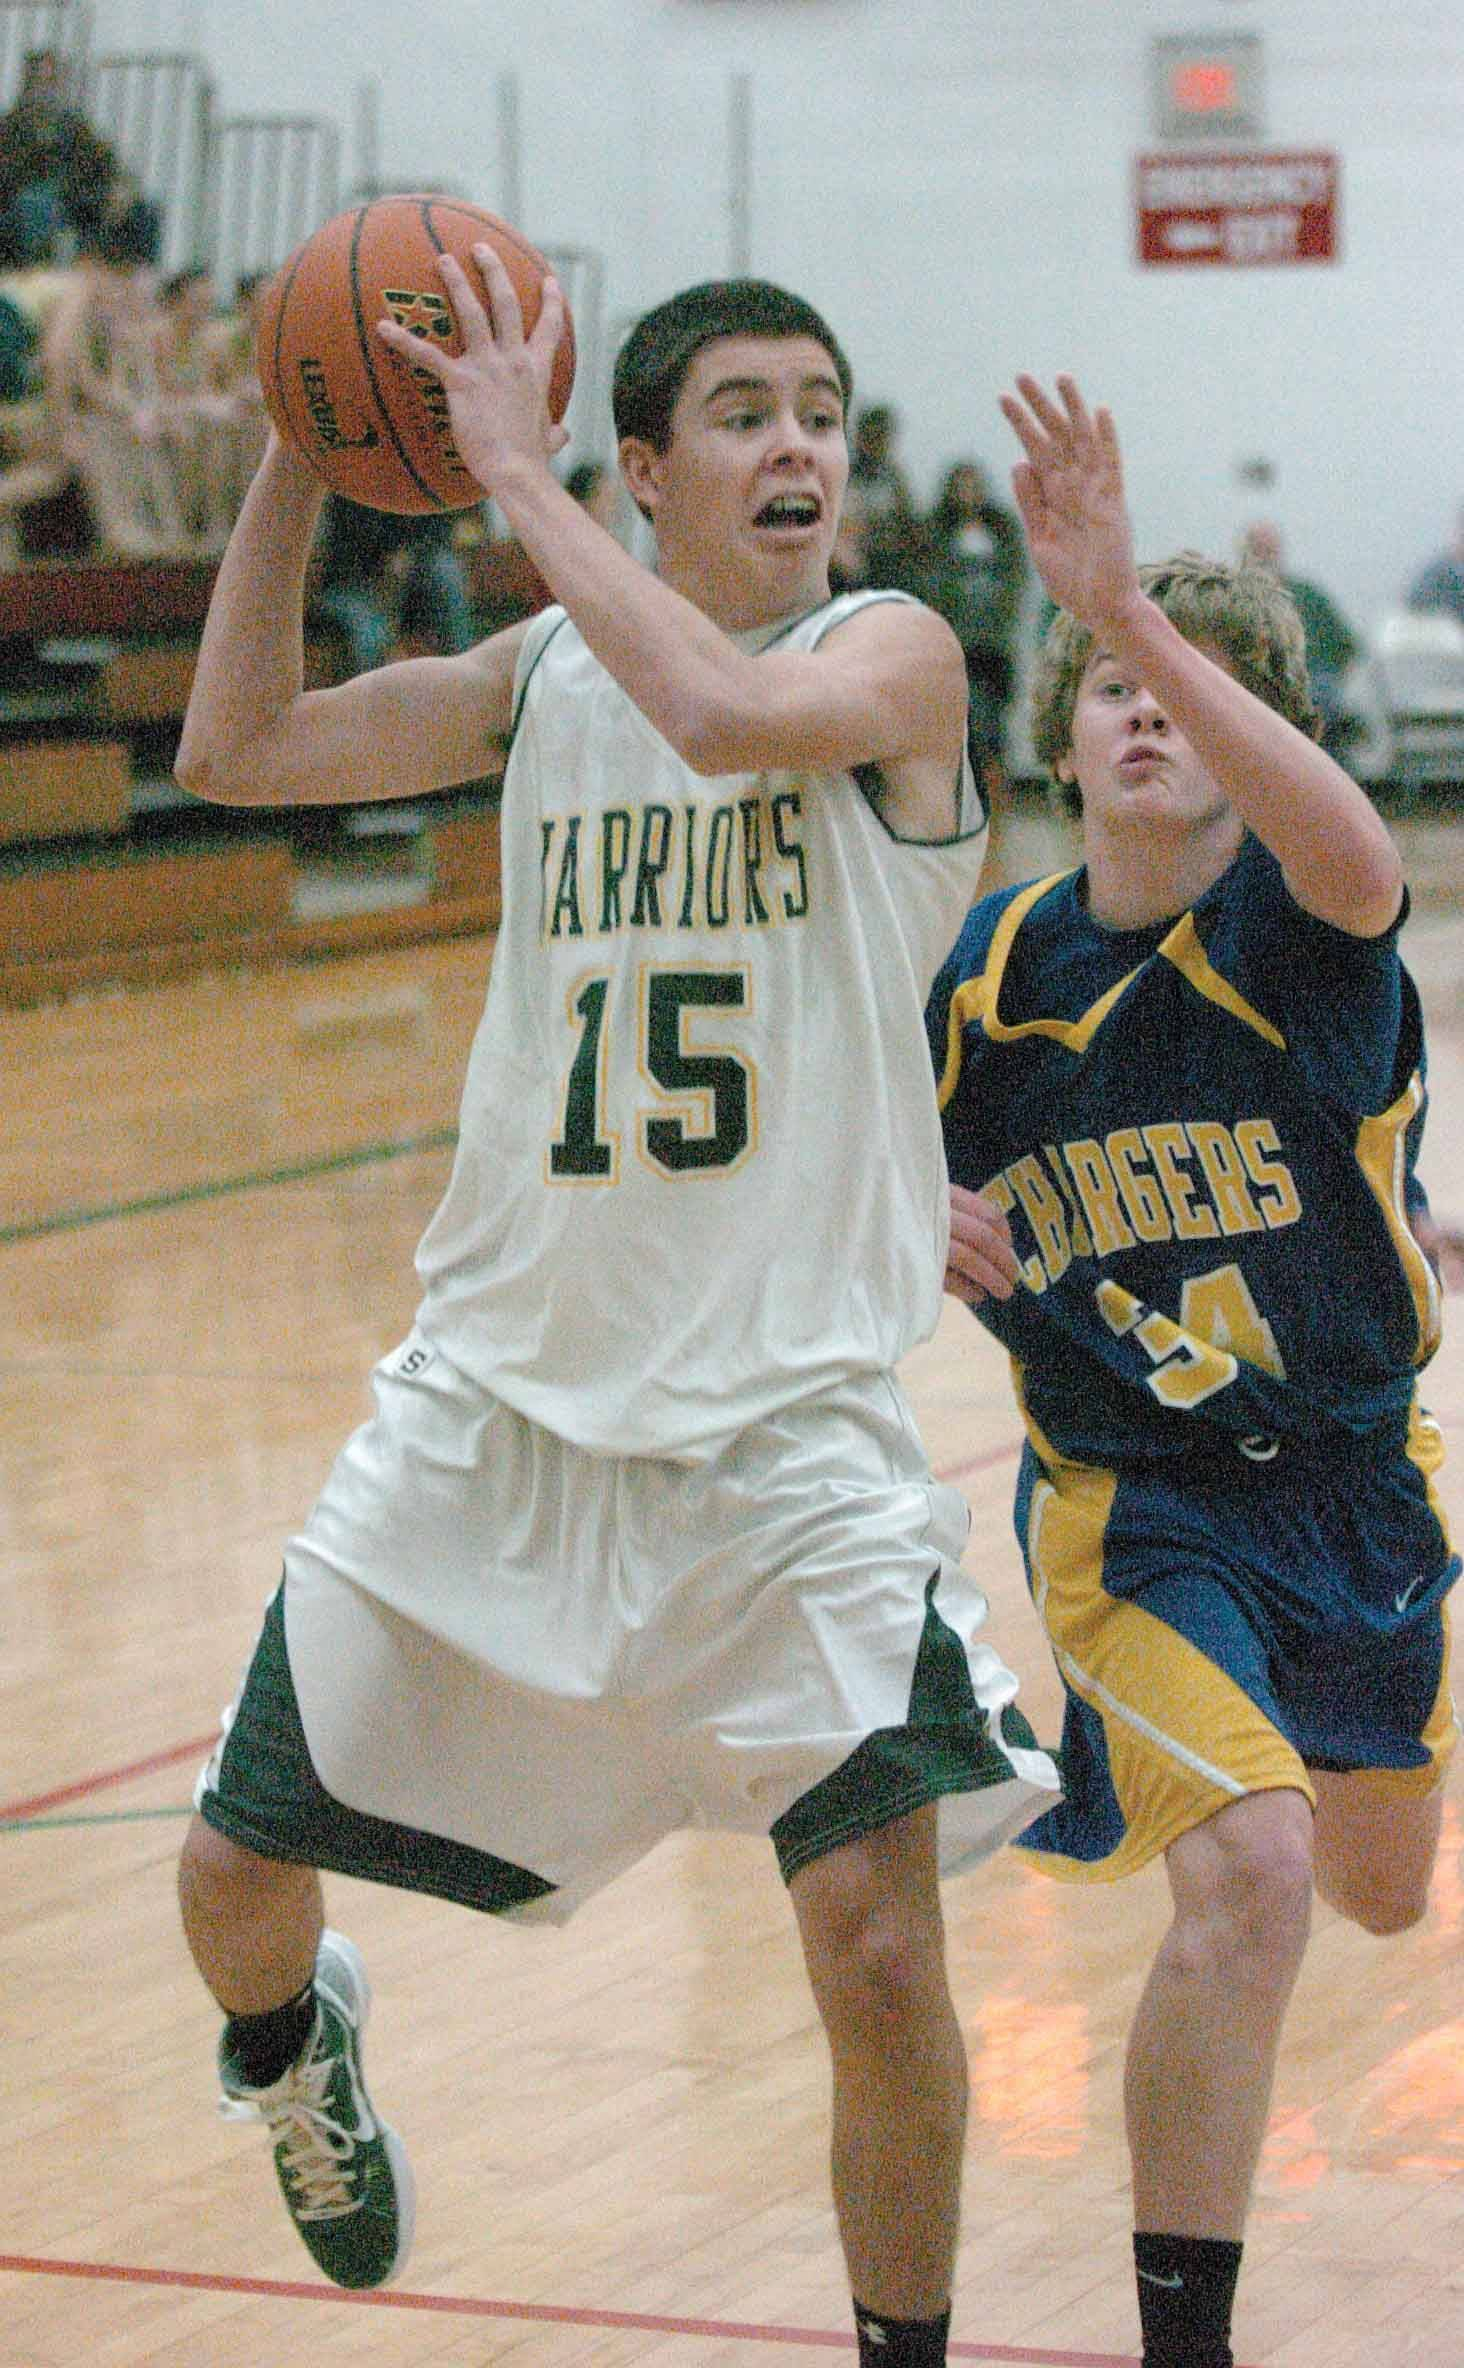 Malby's energy lifts Waubonsie Valley